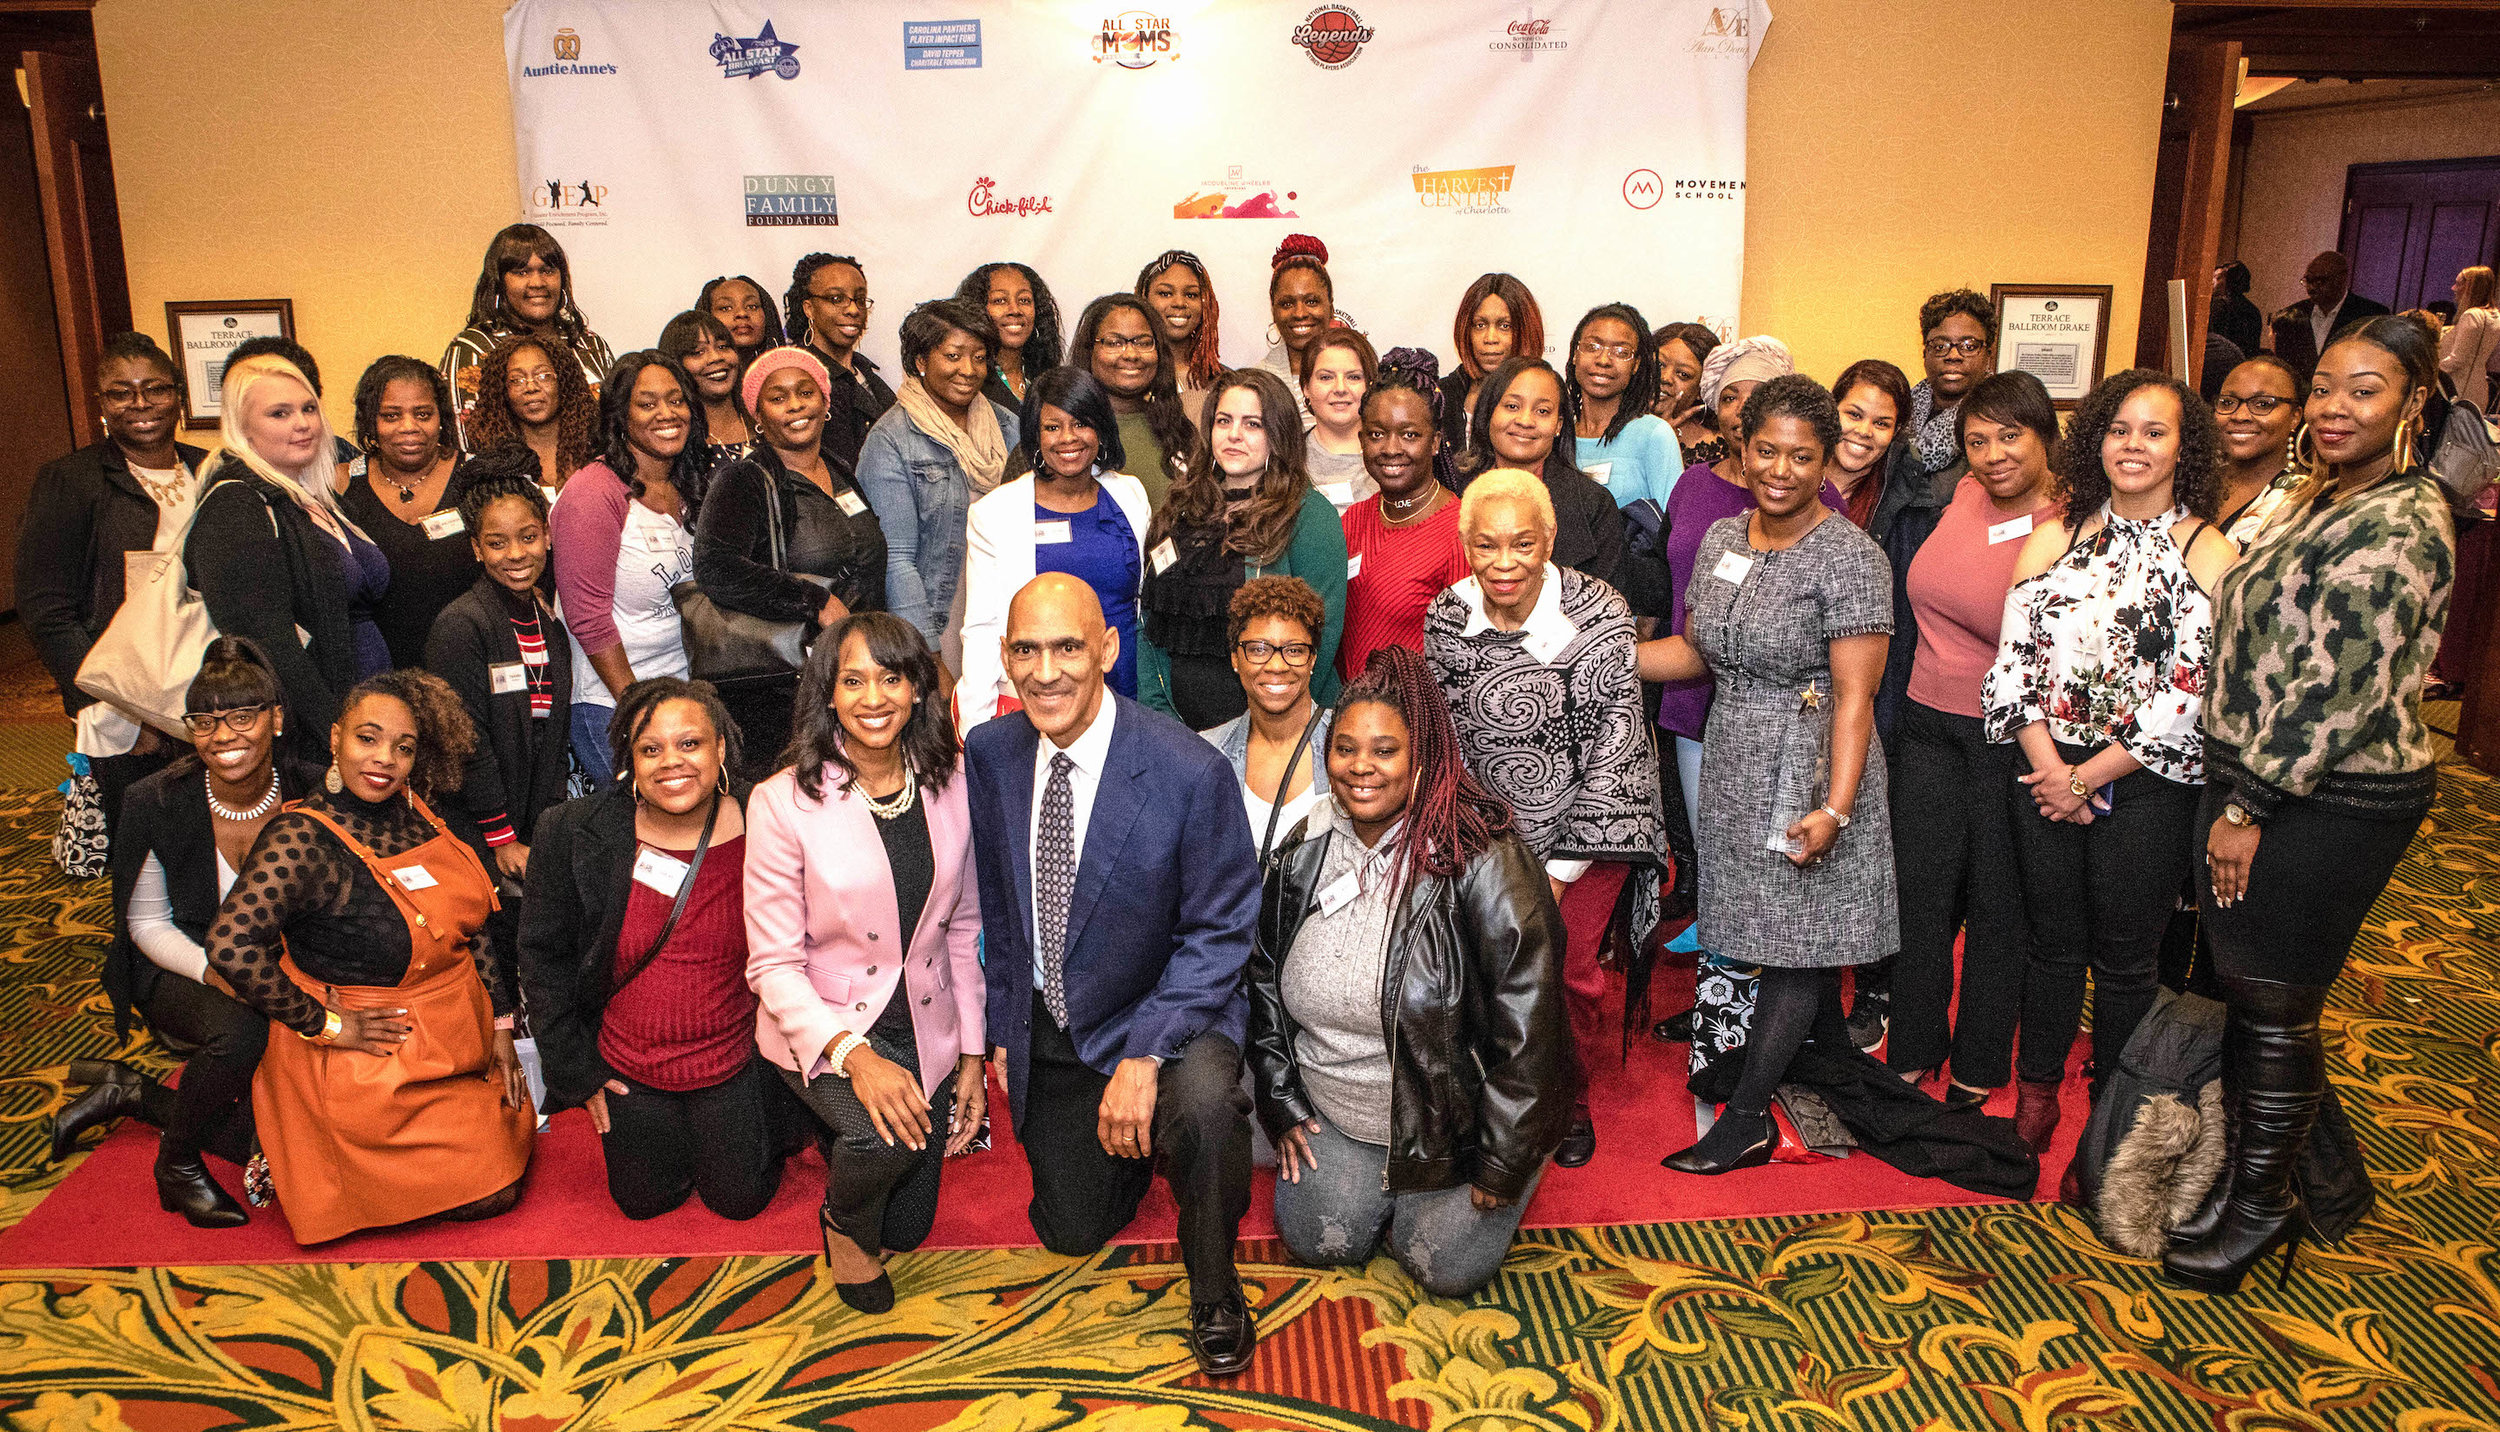 Charlotte All-Star Moms with Tony Dungy and Kim Anthony (2019)